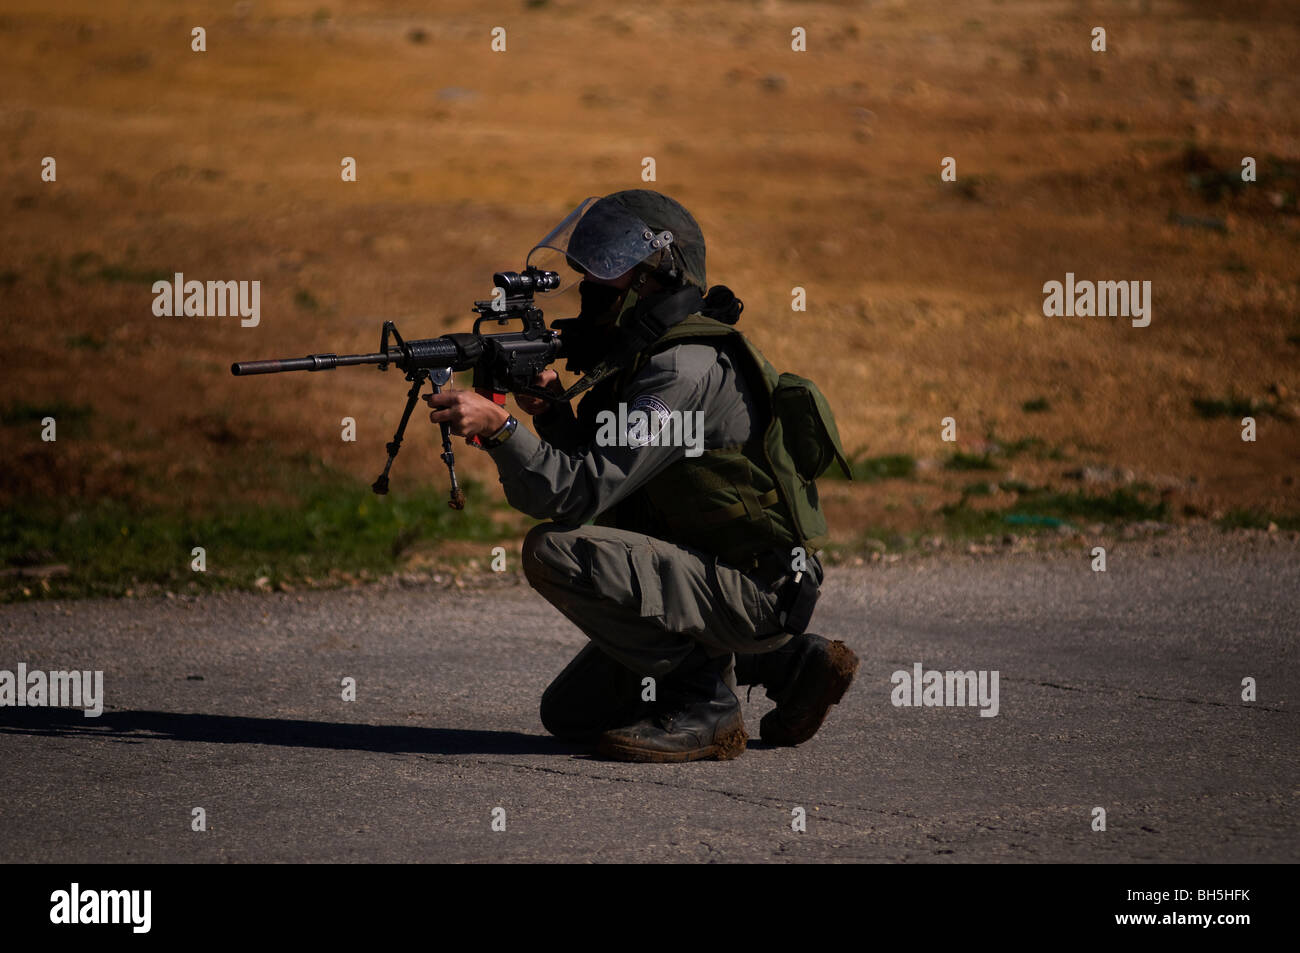 An Israeli border policeman fires rubber bullets towards Palestinian demonstrators during a protest in the West - Stock Image